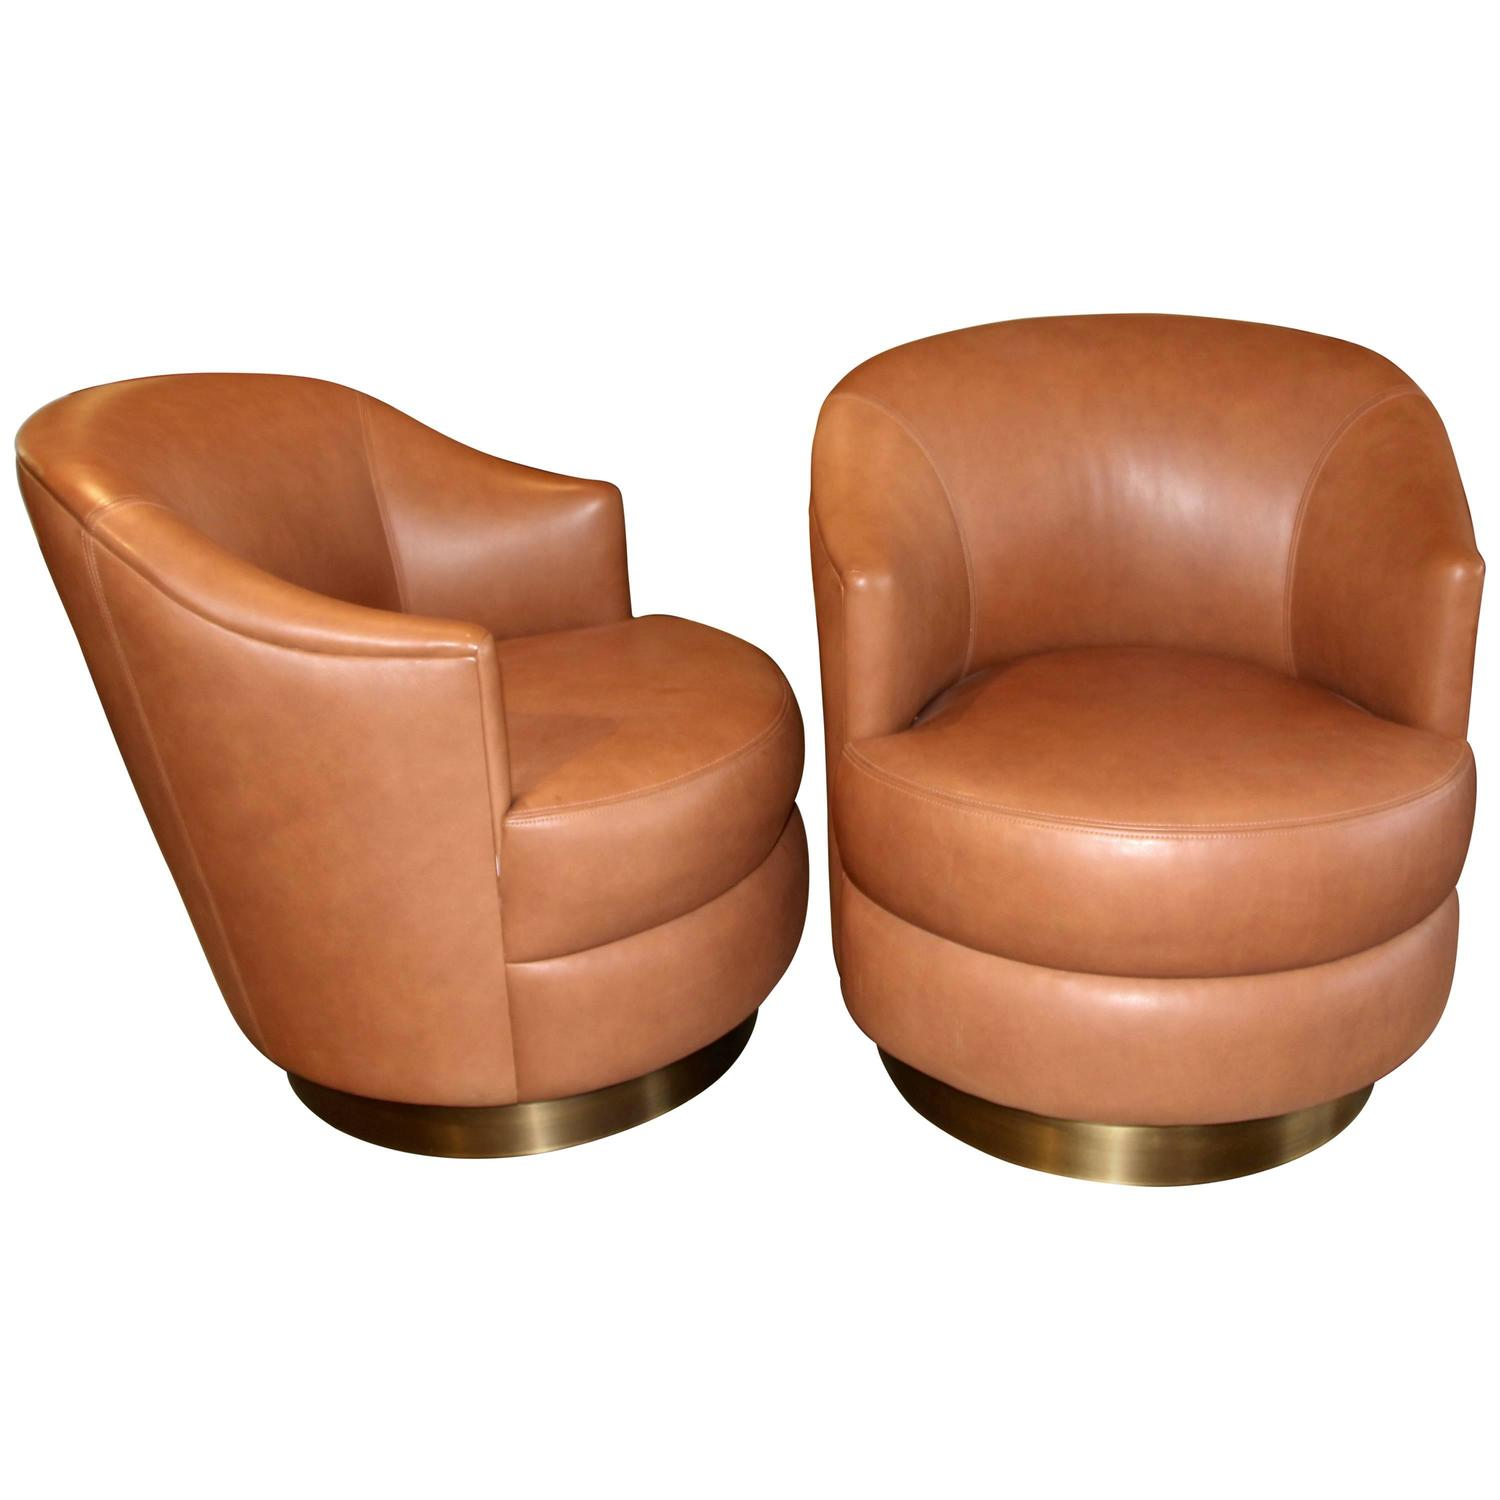 swivel chairs for sale wholesale lycra chair covers australia a rudin leather with brass base ordered by